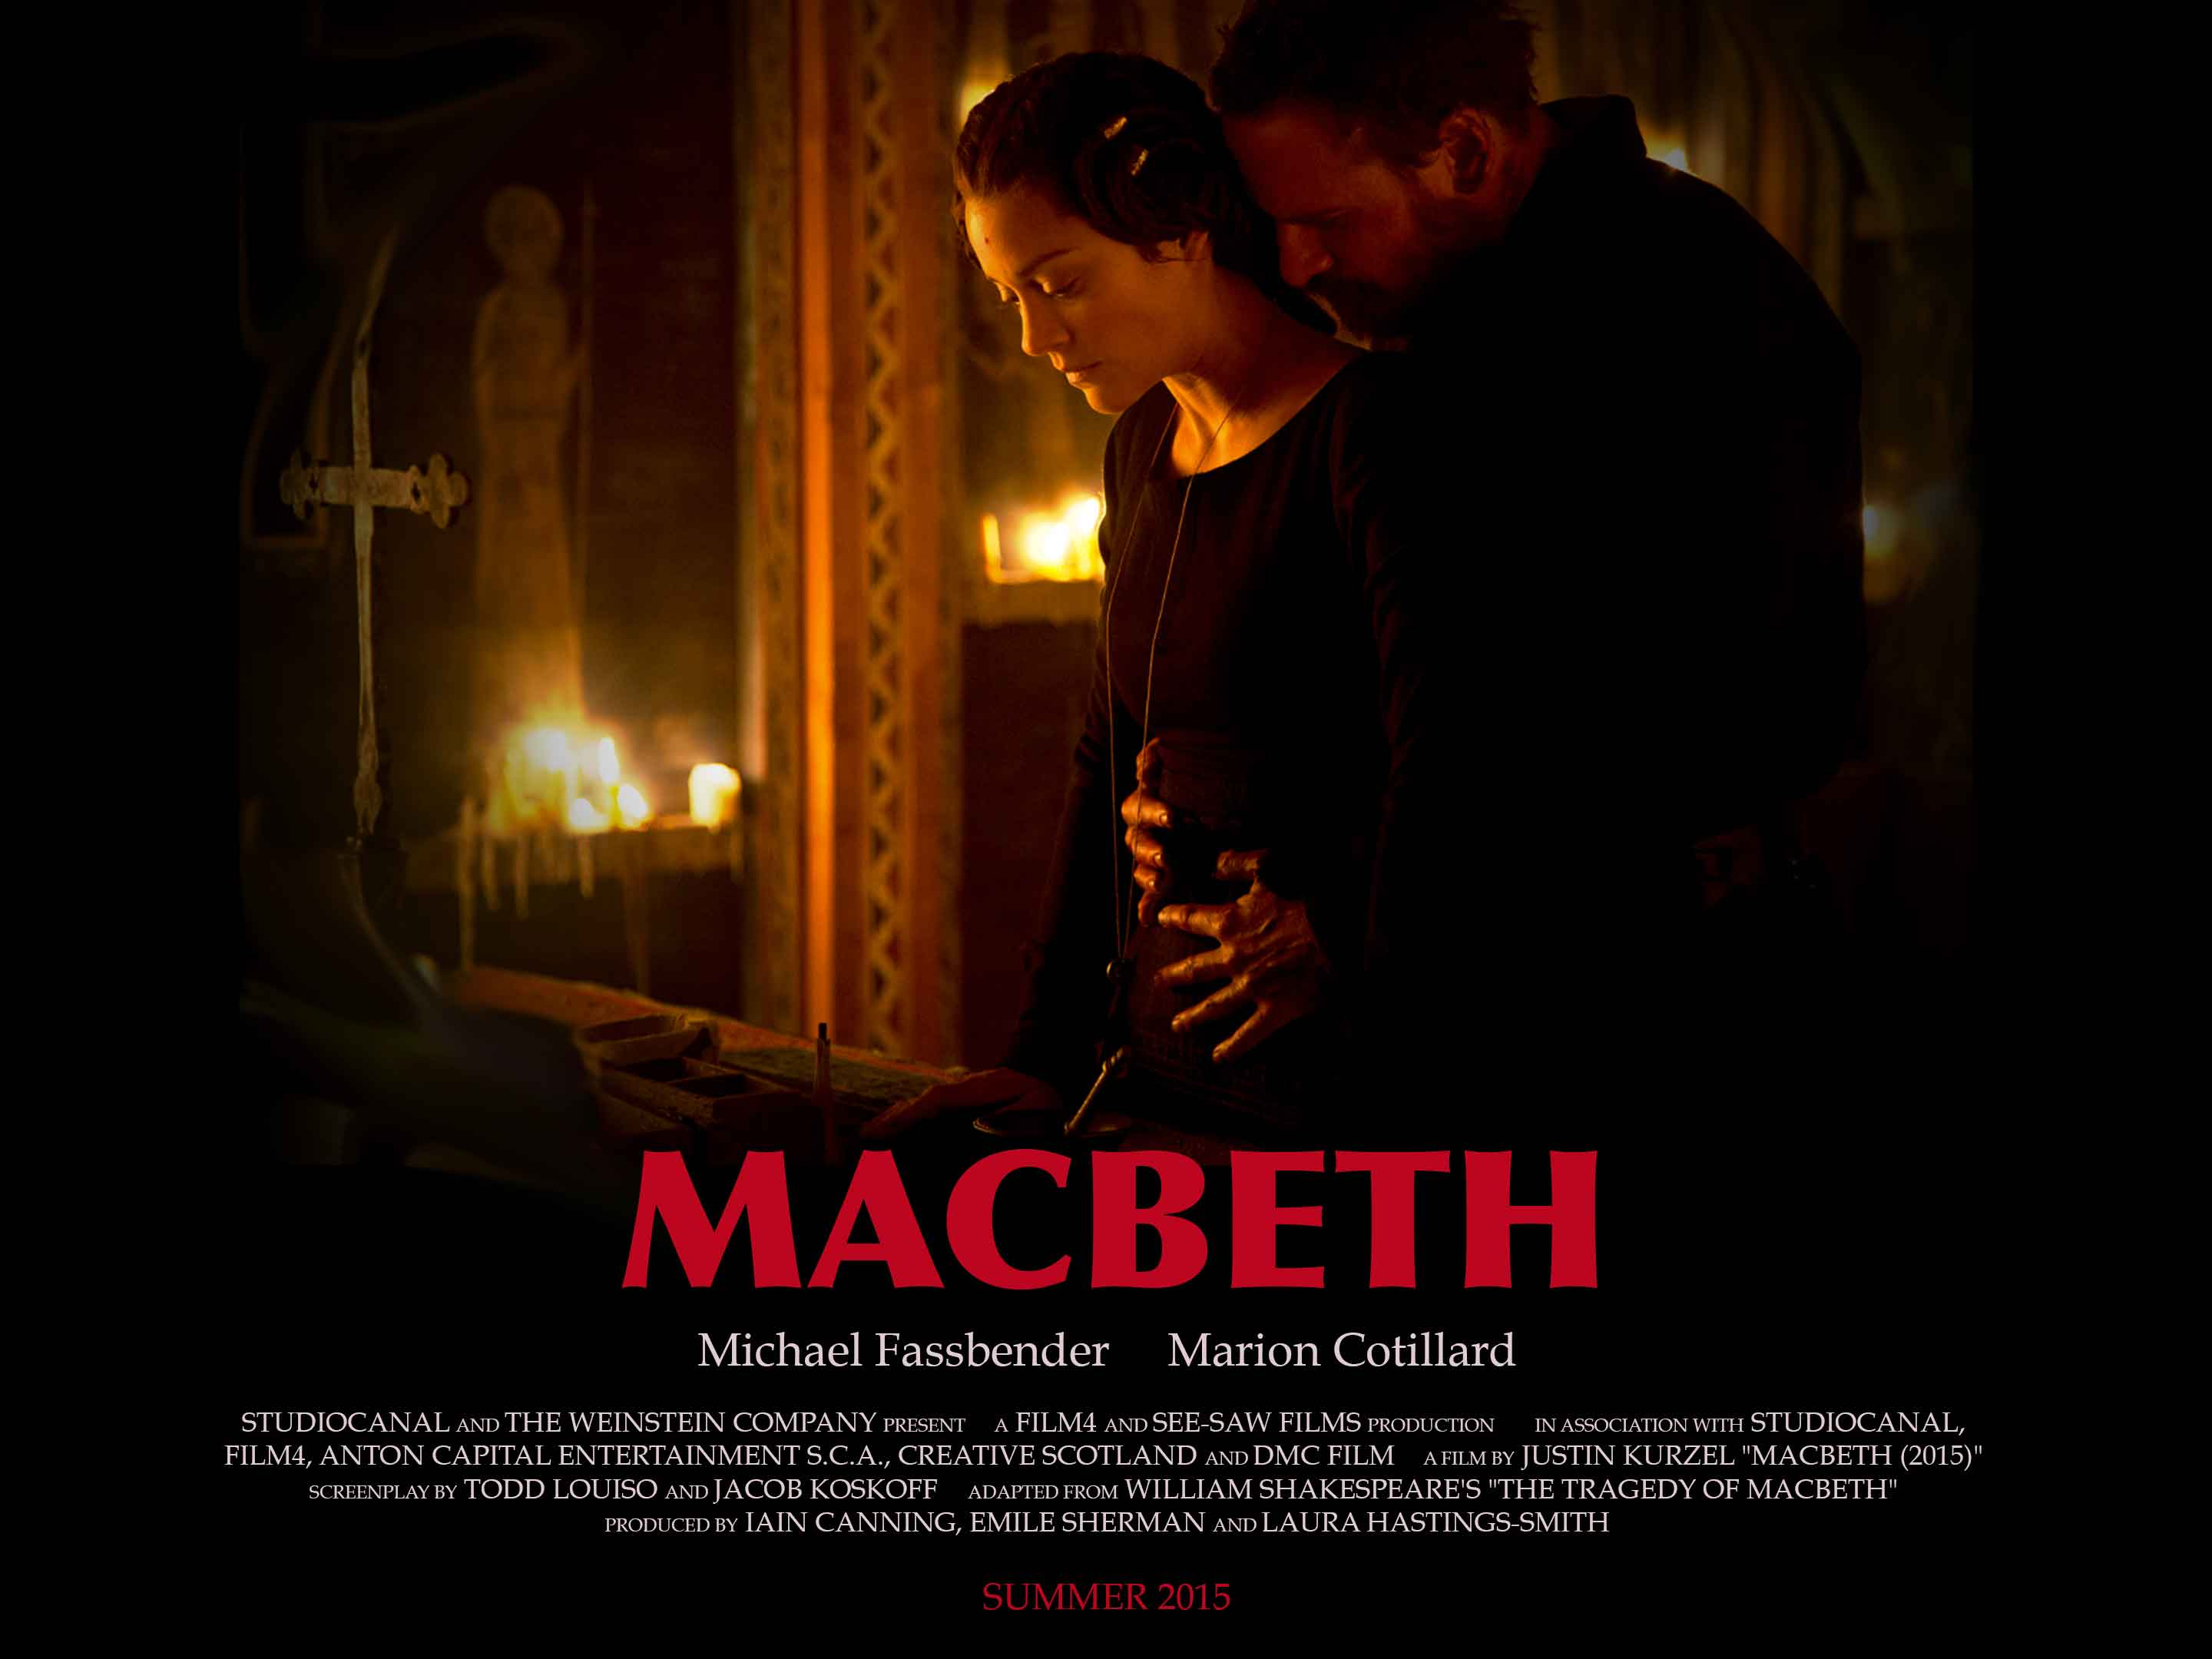 macbeth hyde park cinema leeds the bardathon macbeth hyde park cinema leeds